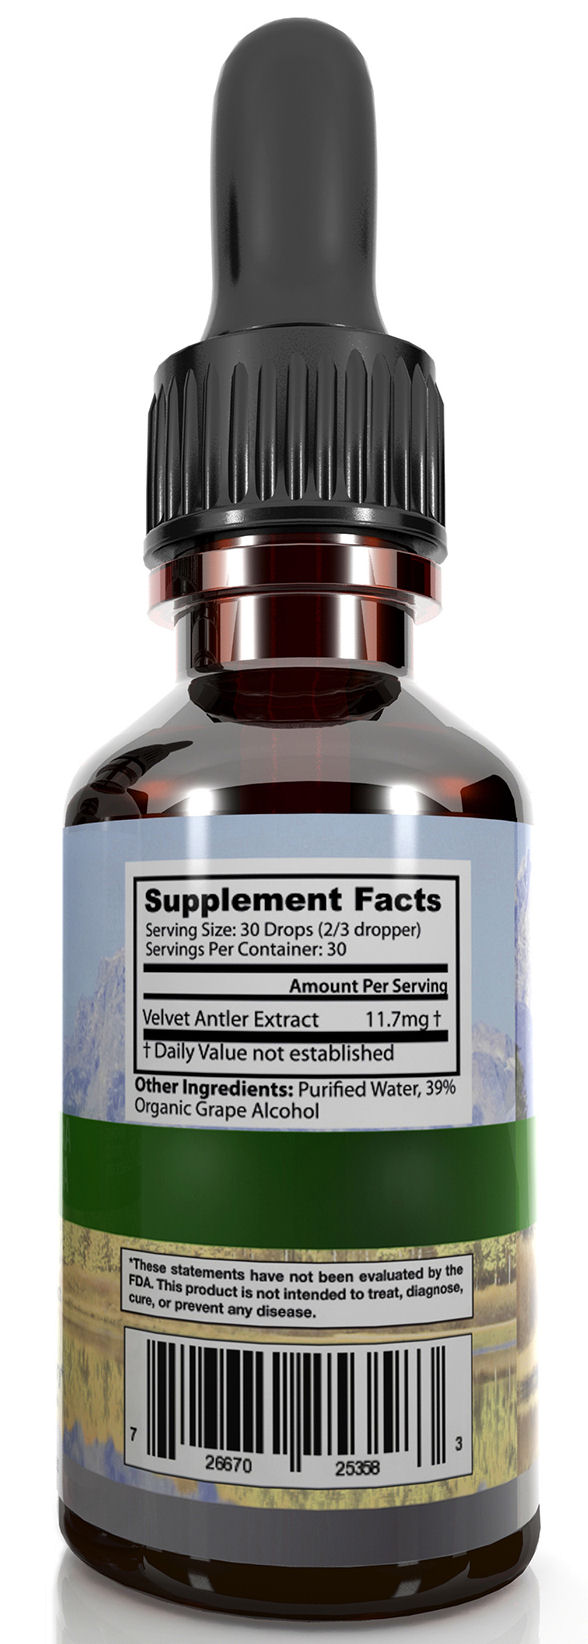 Deer Antler Velvet Extract Silver Supplement Facts